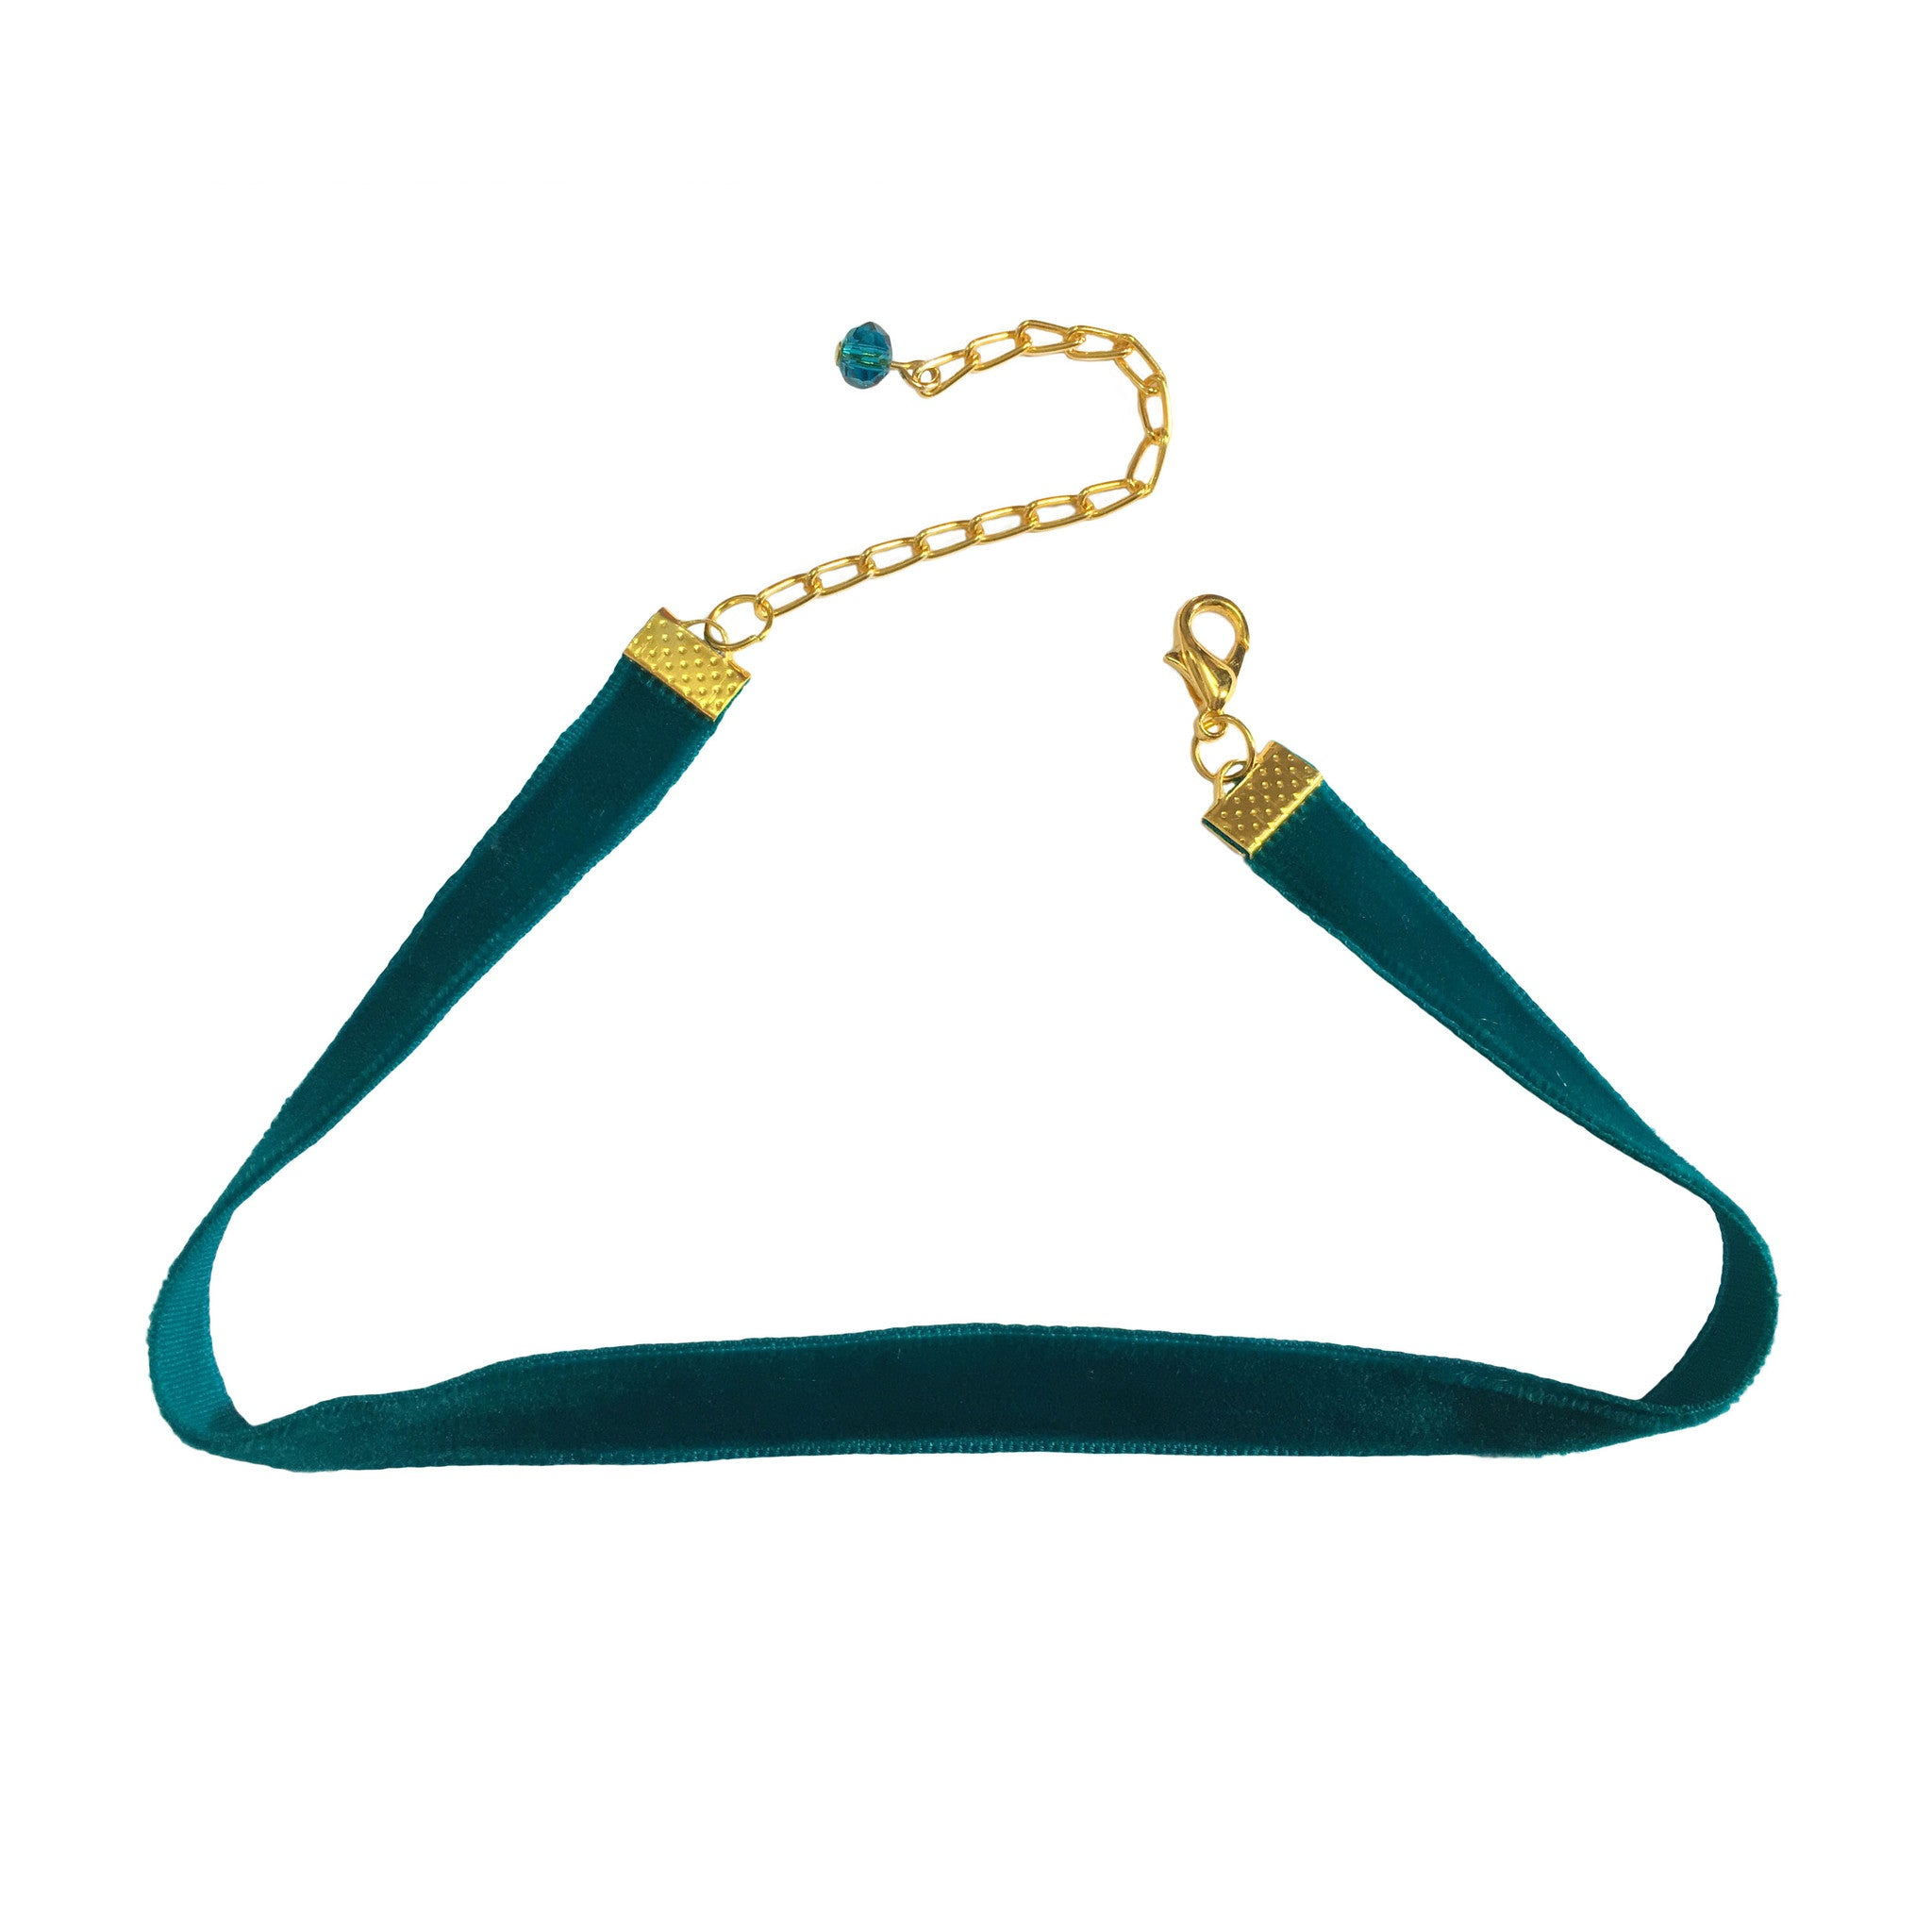 Turquoise Velvet Choker Necklace - Crochita - 1